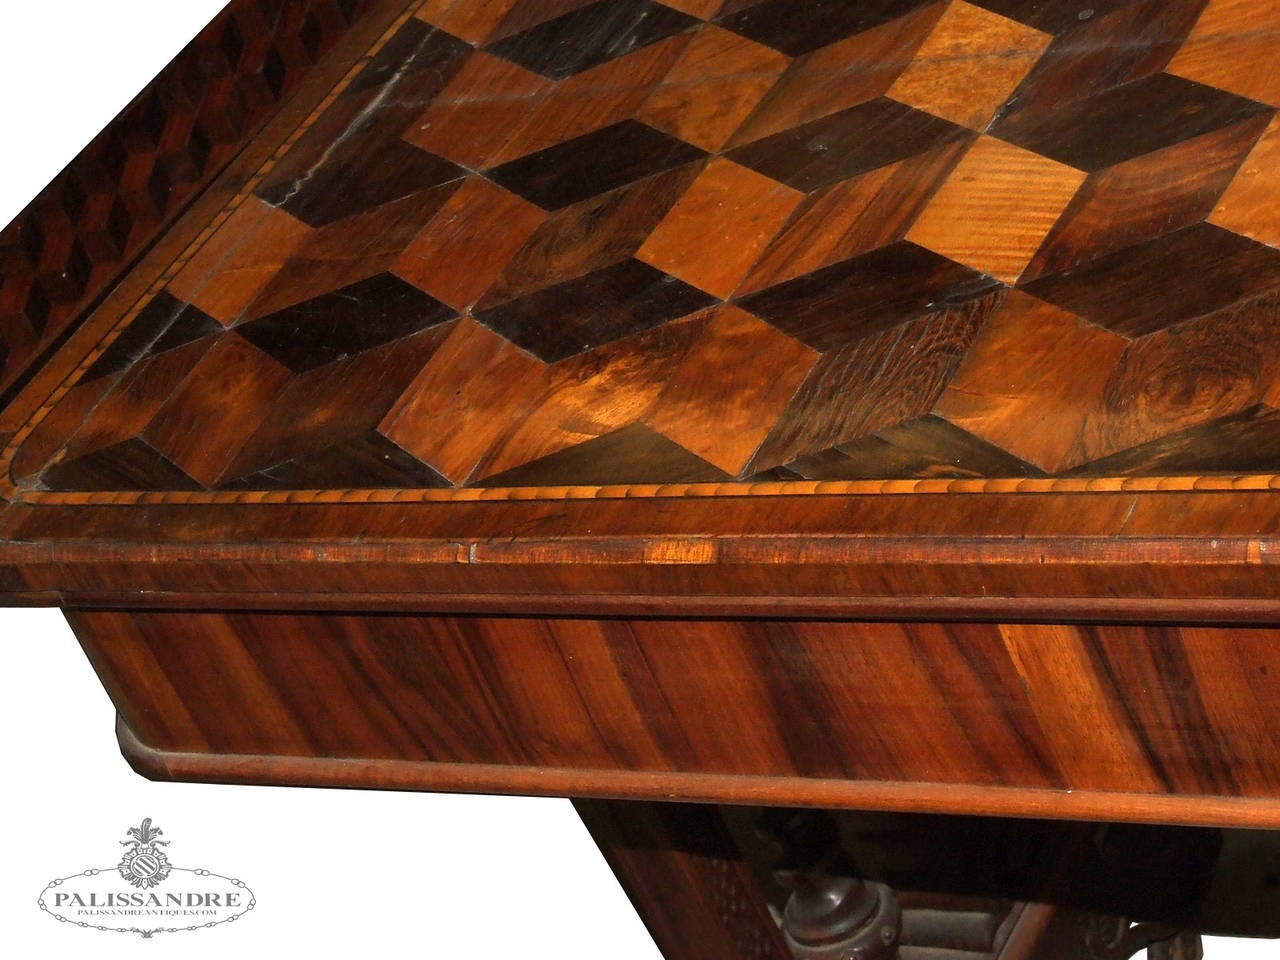 Palissandre table decorated with inlay For Sale at 1stdibs -> Table Tele Palissandre